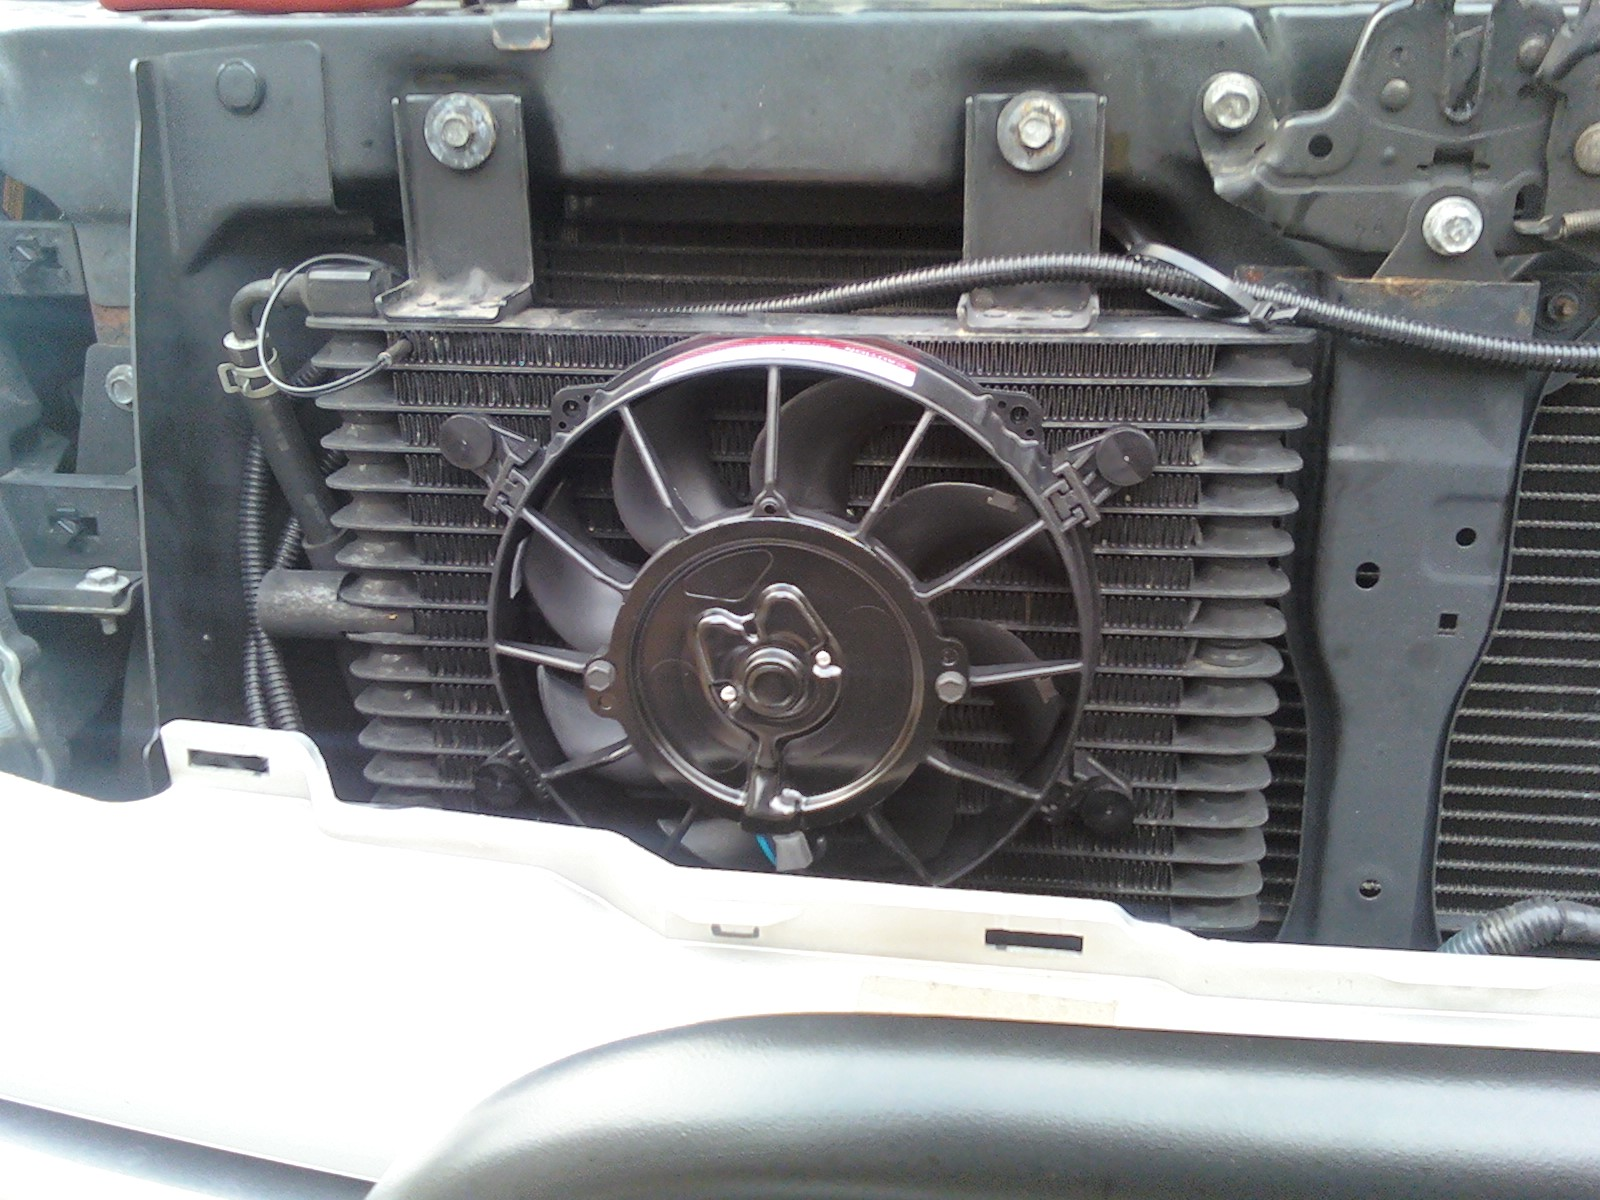 Aid V Px Change A Fuel Filter Step Version likewise Wiring Extlights also X likewise D Automatic Transmission Radiator Oil Cooler Bypass also D Location Purge Control Valve L H Diag. on 2012 nissan frontier service manual